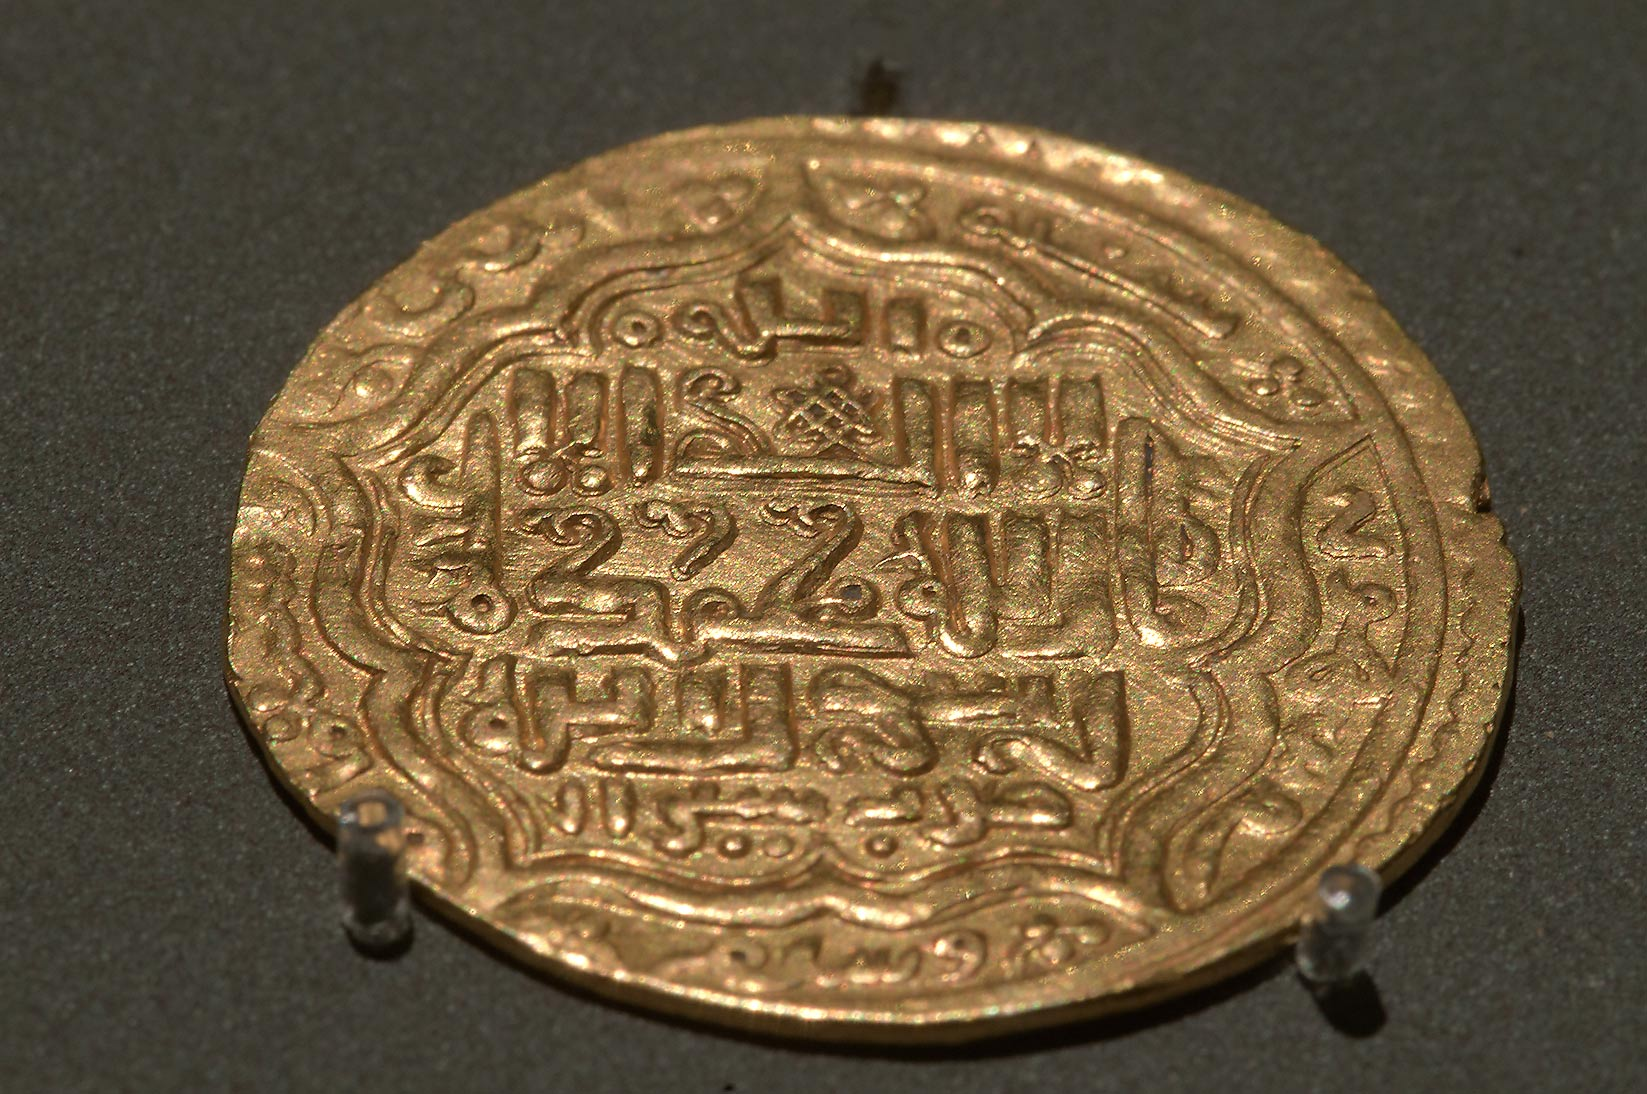 Iikhanid dinar (Iran, 1301-4) on display in Museum of Islamic Art. Doha, Qatar